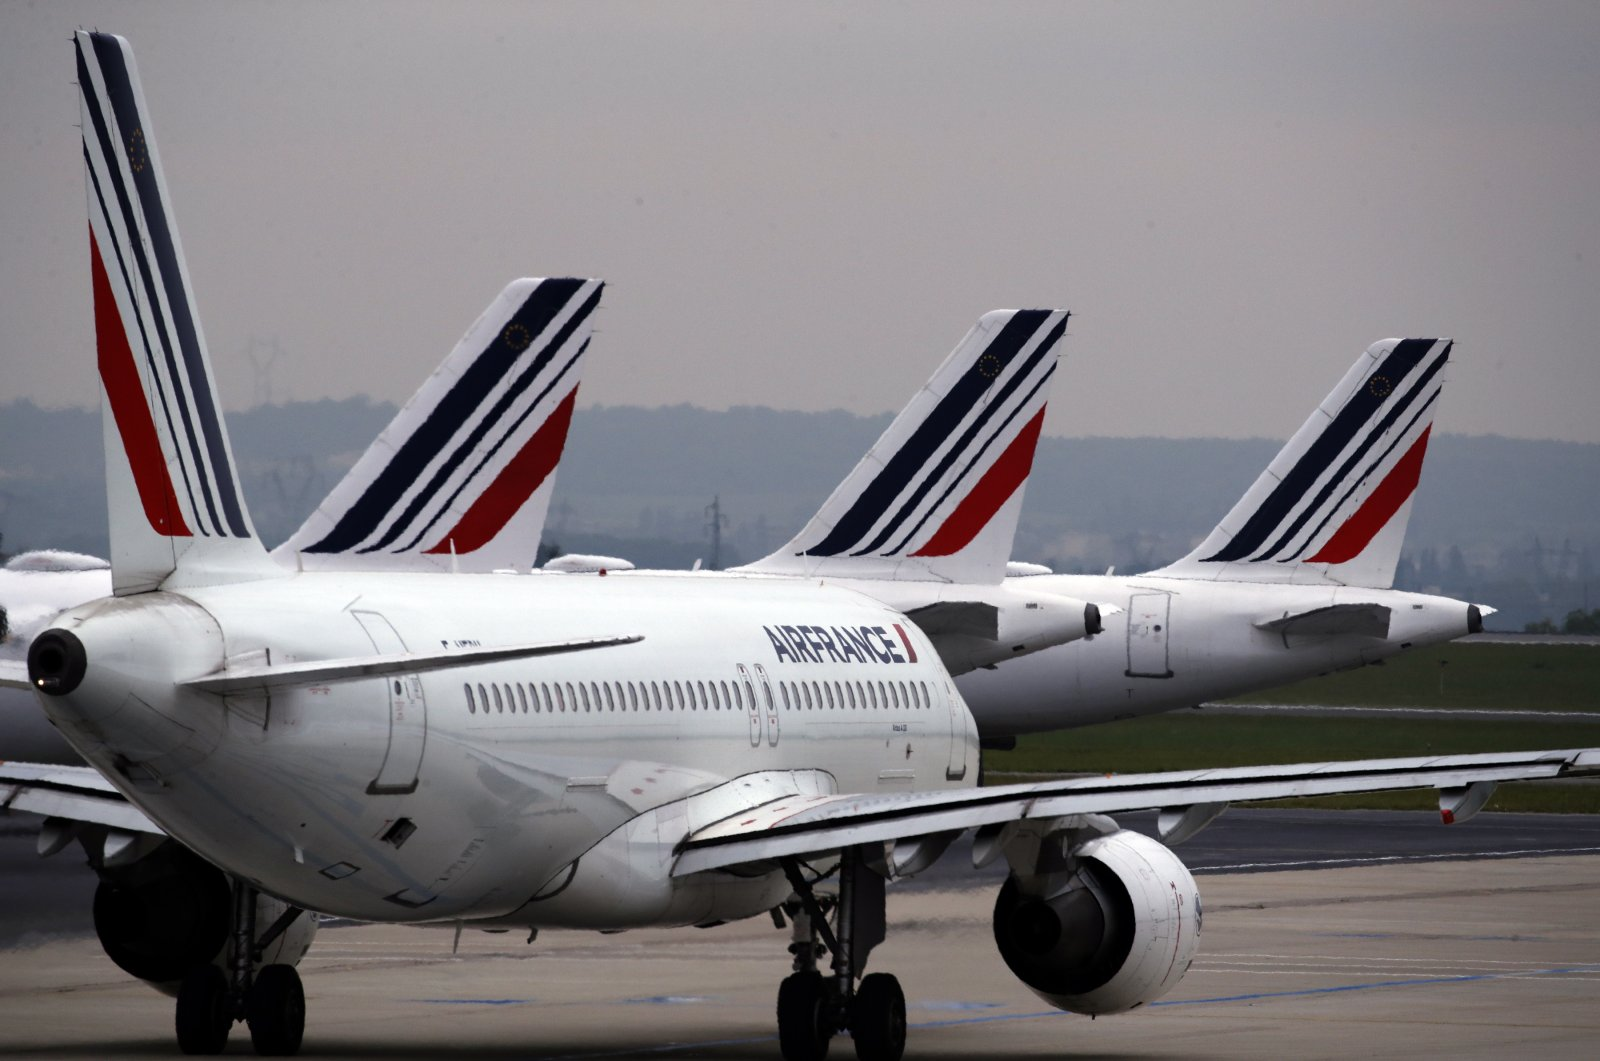 Air France planes are parked on the tarmac at Paris Charles de Gaulle airport, in Roissy, near Paris, May 17, 2019. (AP Photo)